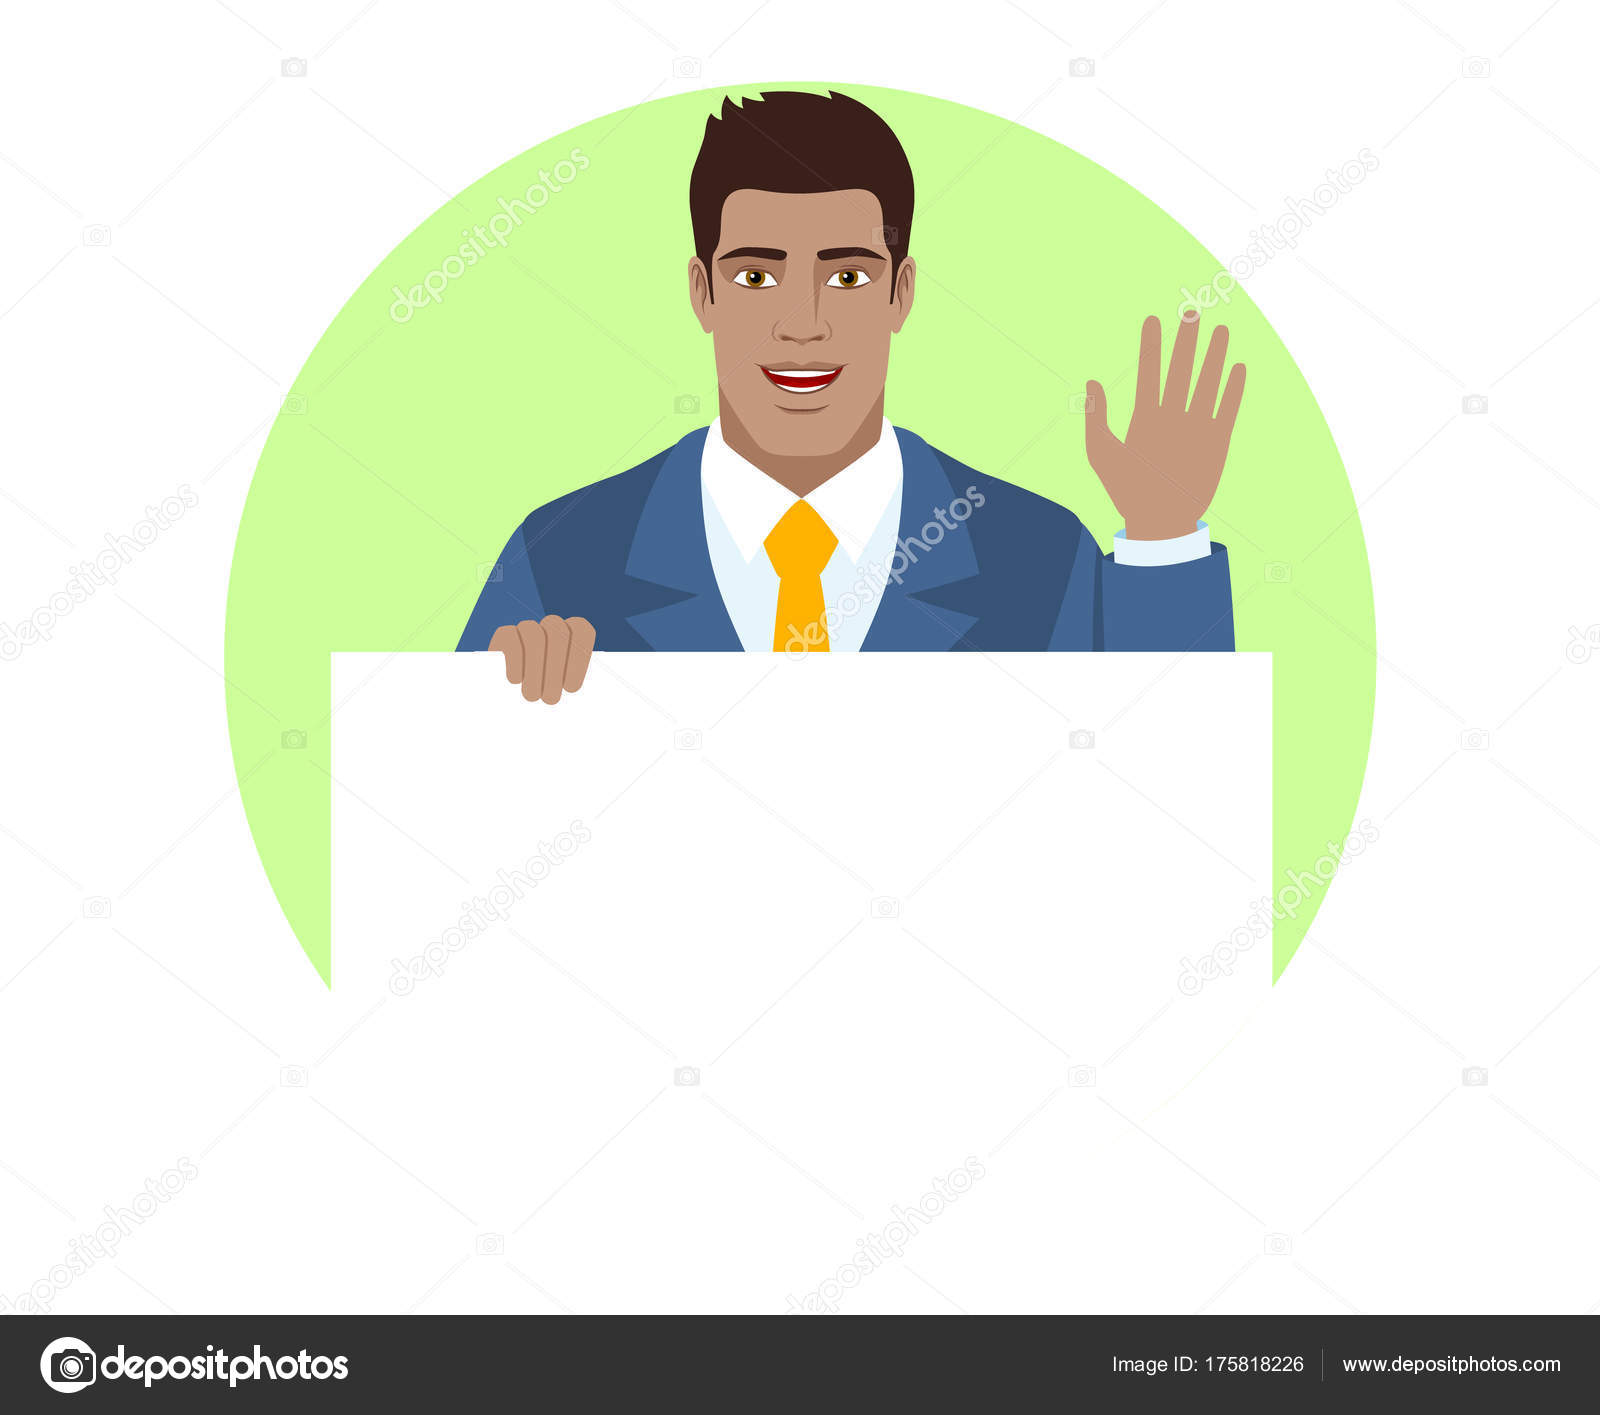 Businessman holding white blank poster and greeting someone with businessman holding white blank poster and greeting someone with his hand raised up portrait of black business man in a flat style vector illustration m4hsunfo